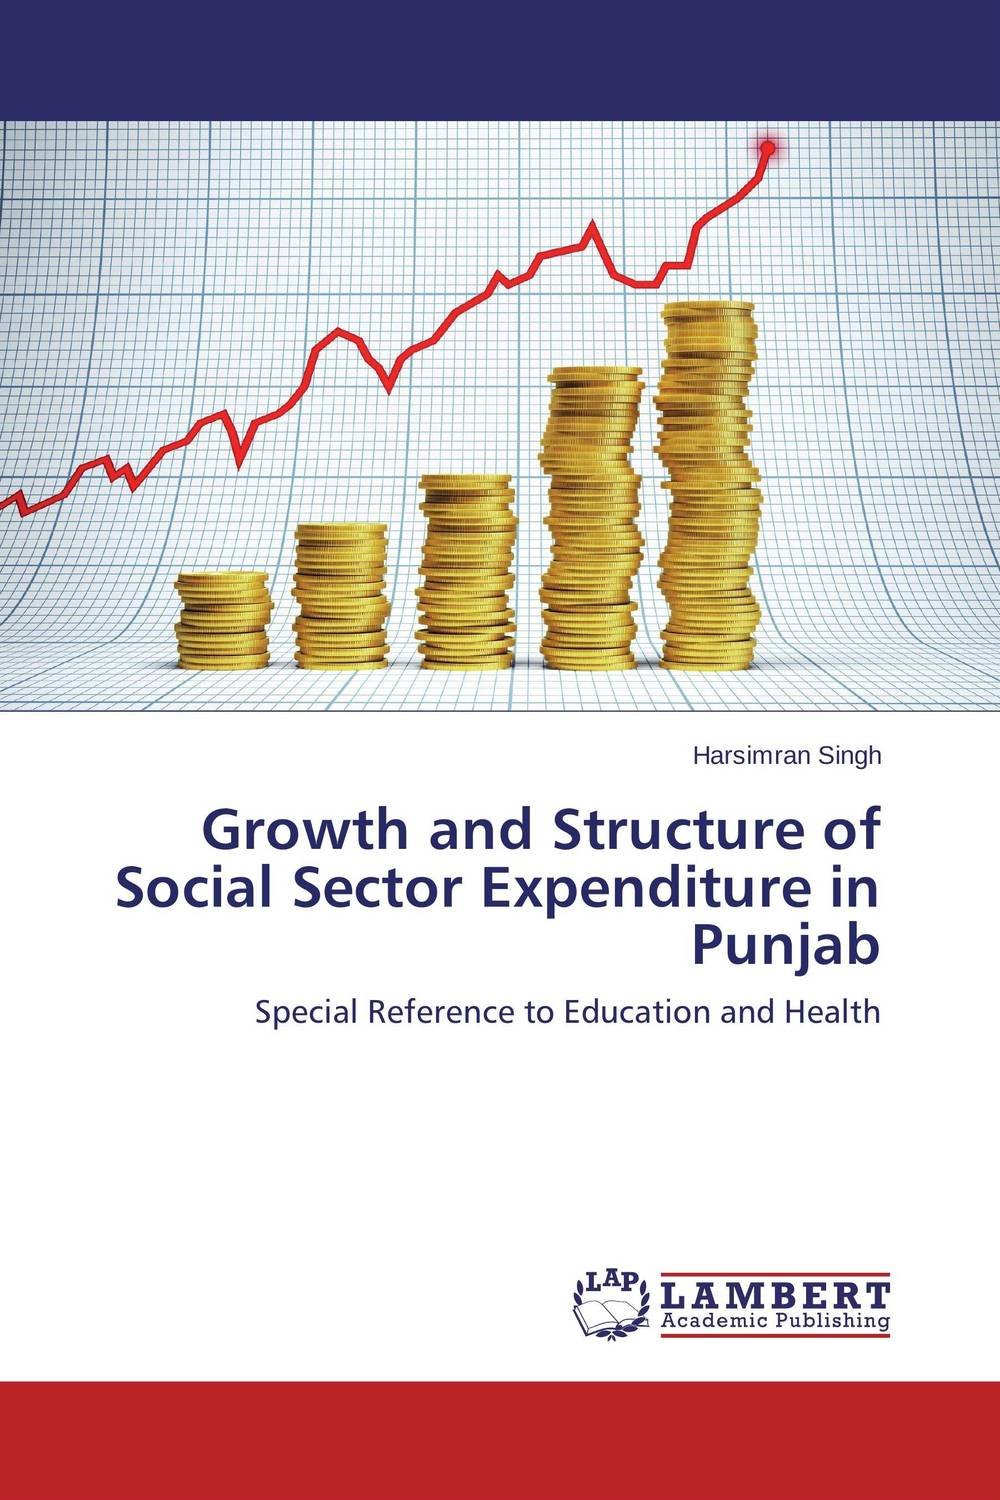 Growth and Structure of Social Sector Expenditure in Punjab foreign aid and social sector of pakistan